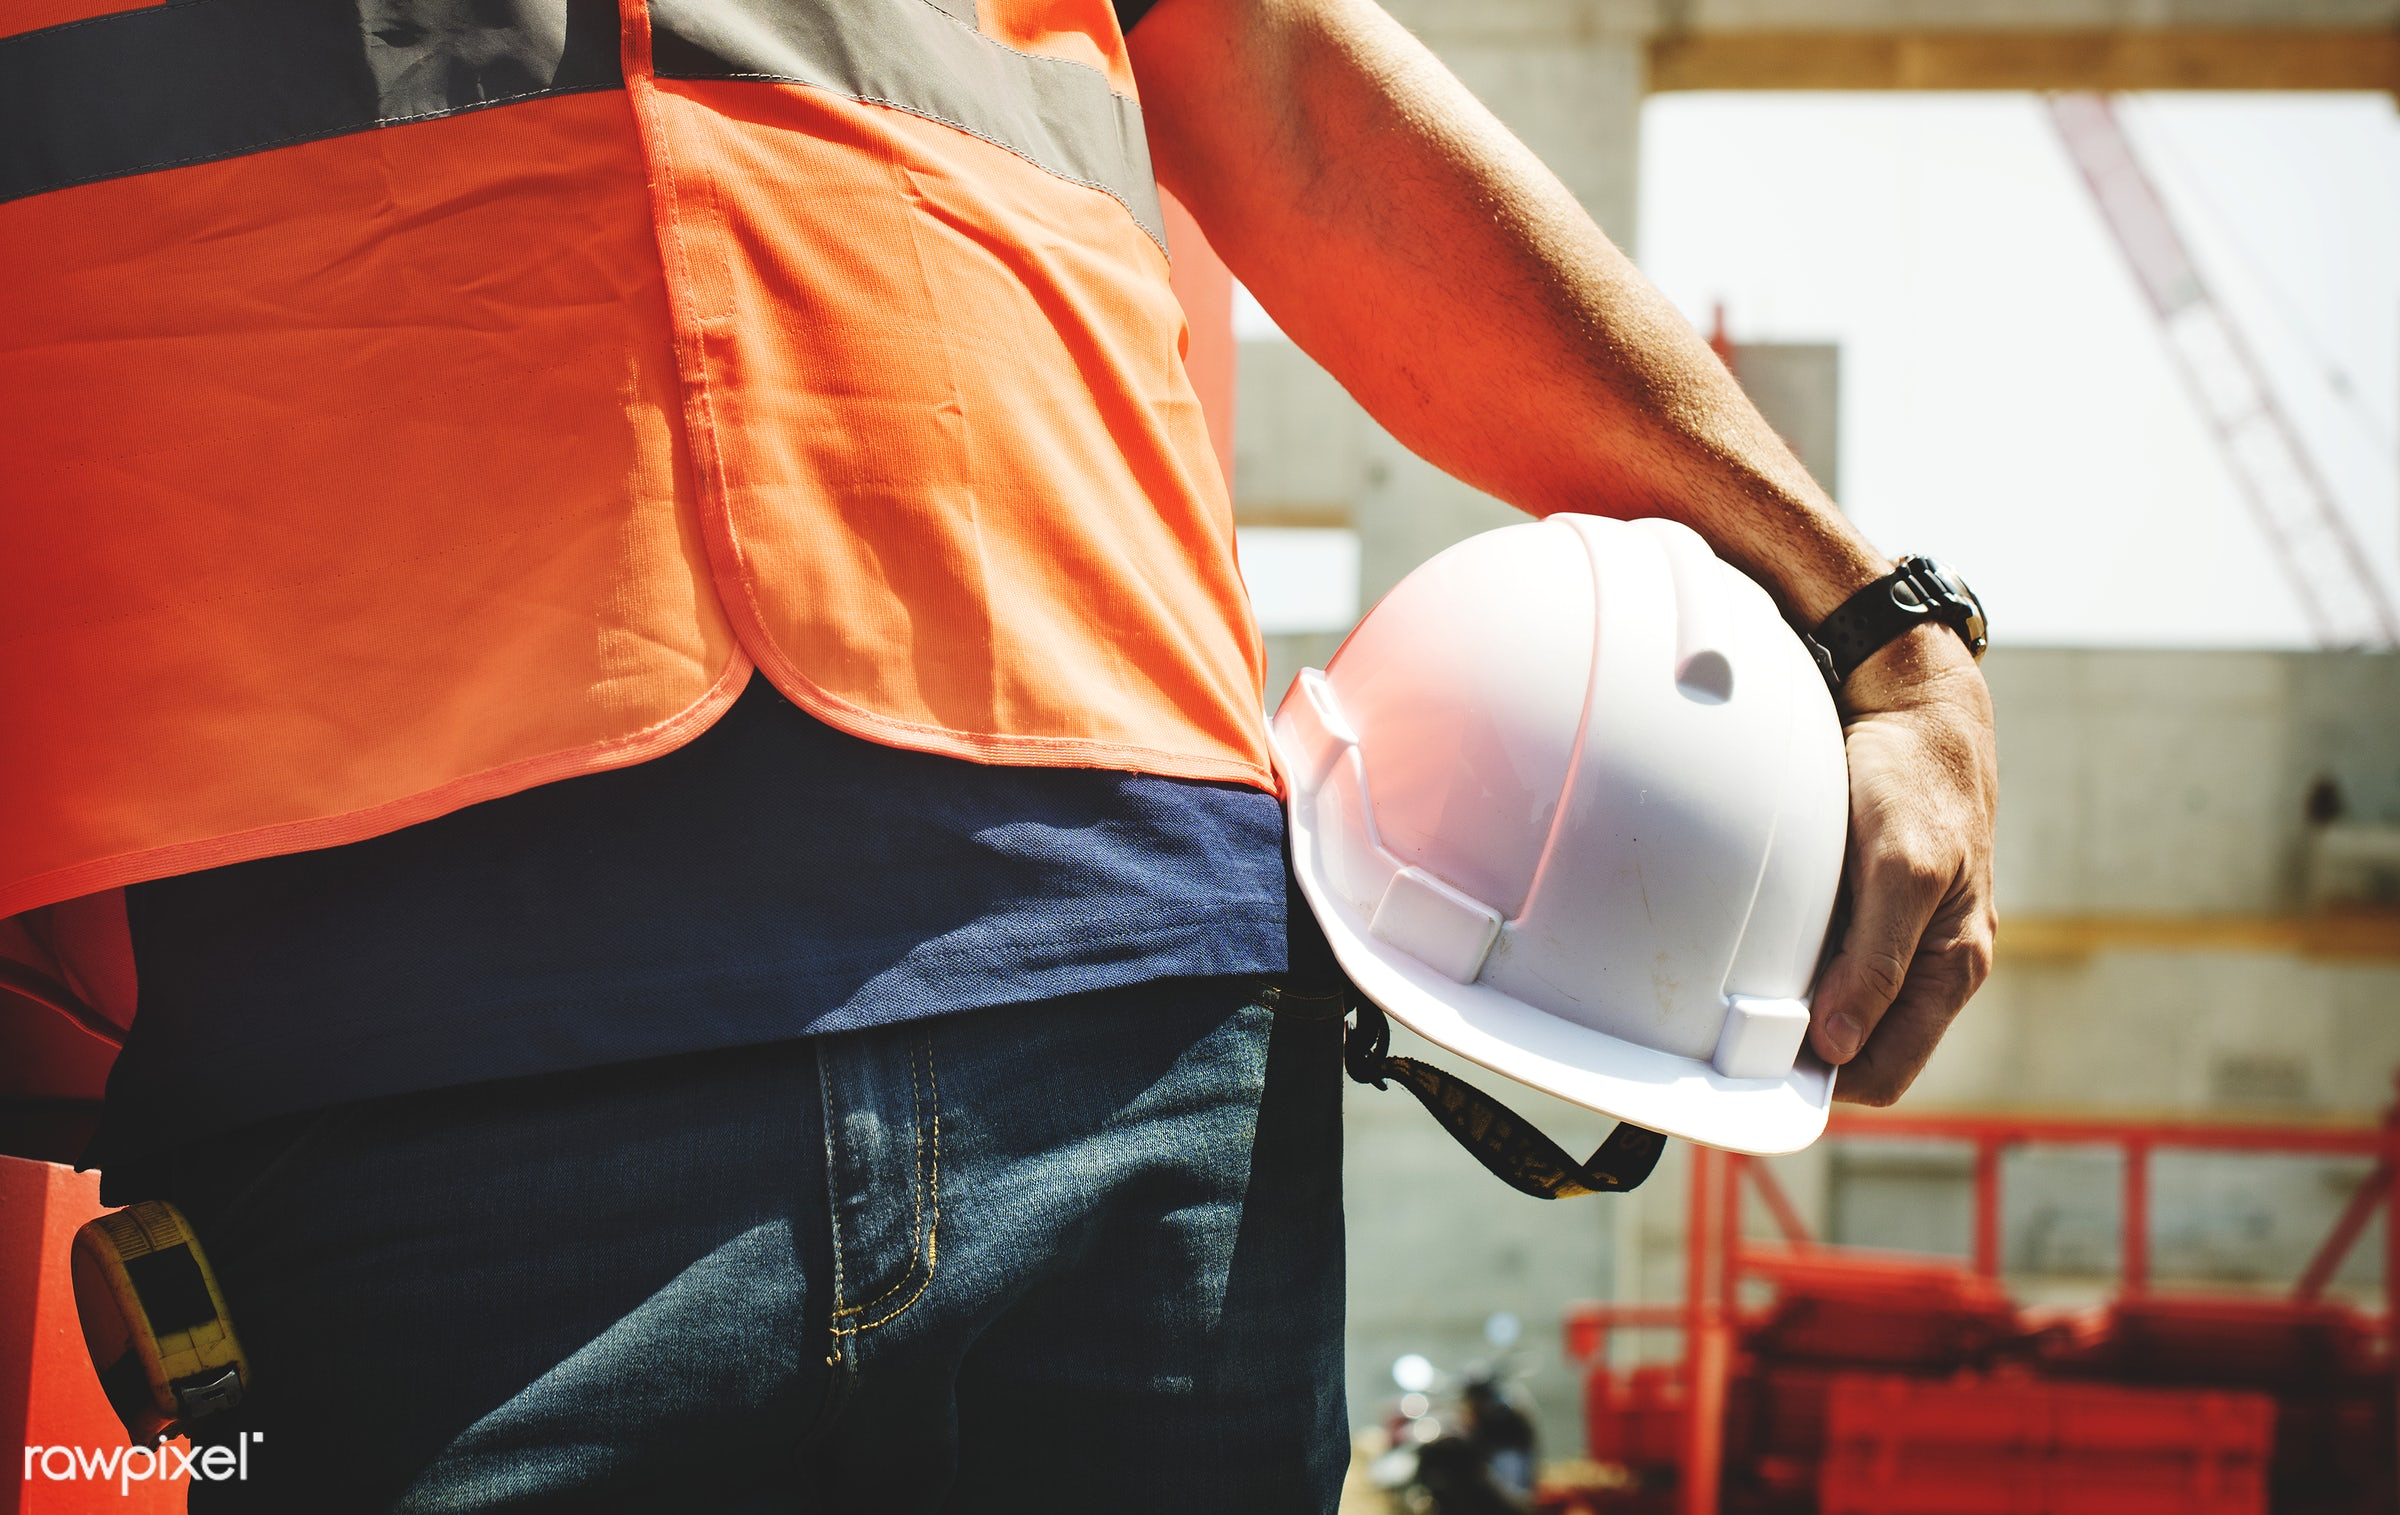 Site engineer on a construction site - worker, safety, construction, engineer, control, engineering, hardhat, building,...